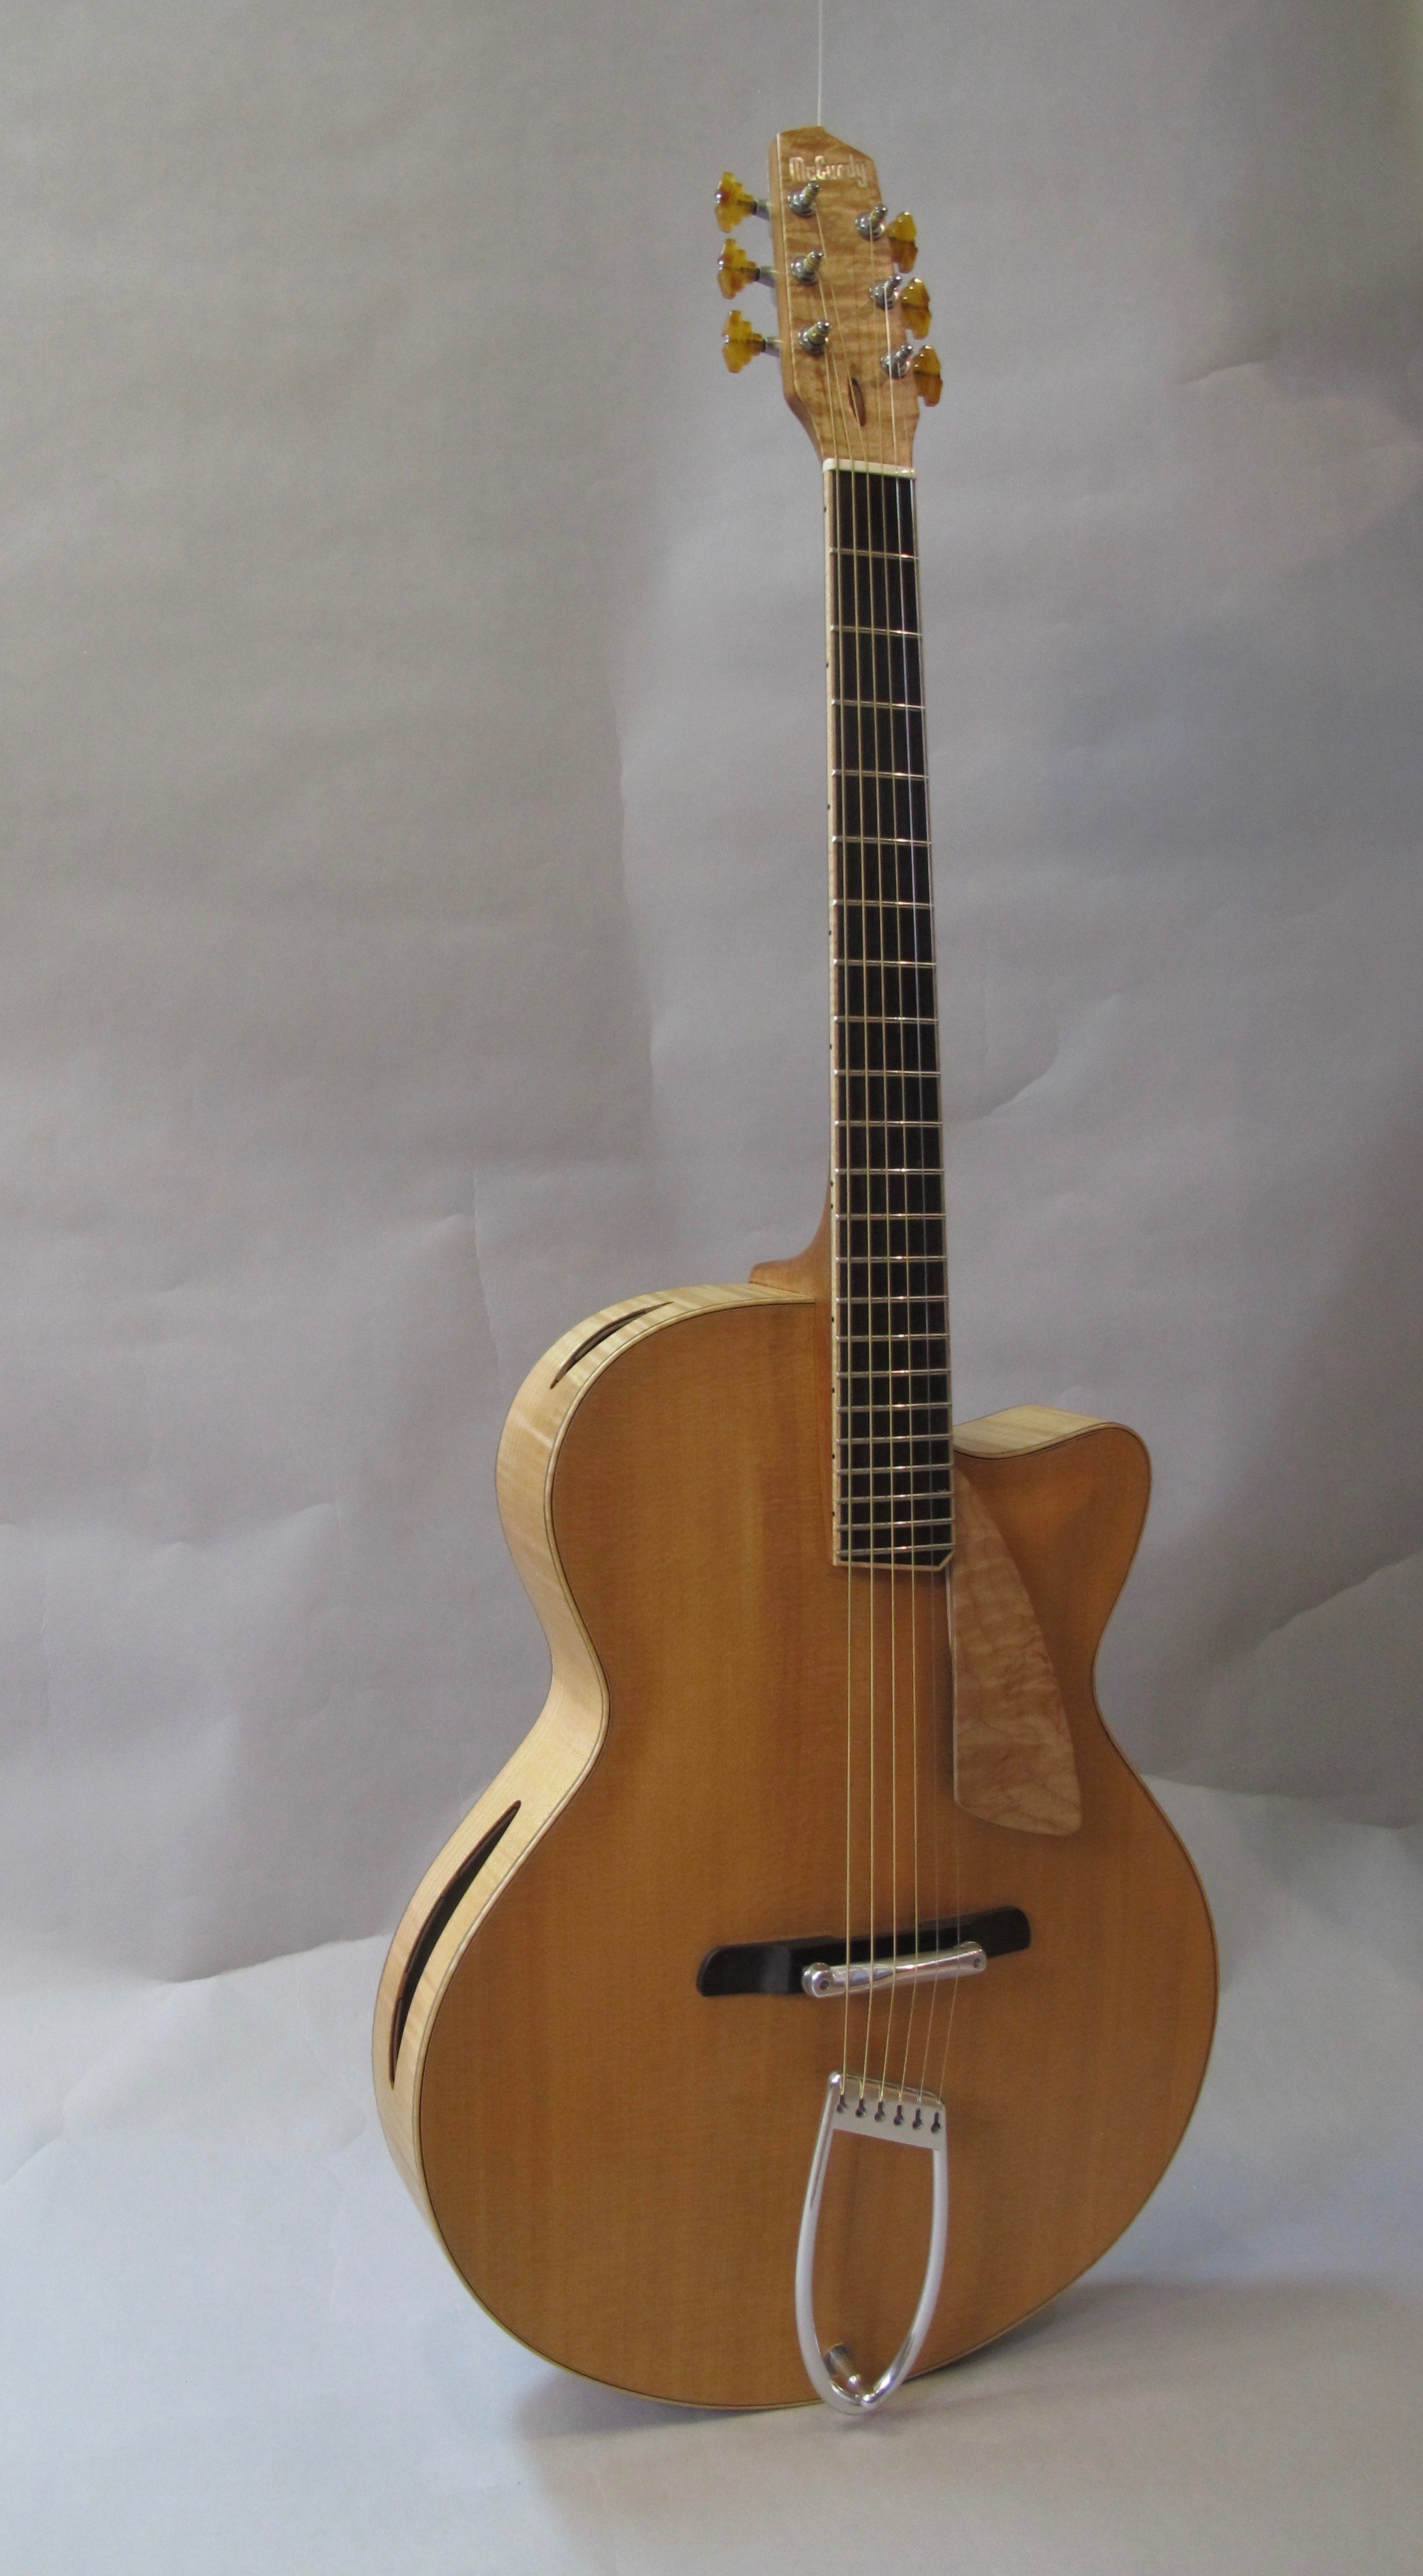 The Transfonic Archtop